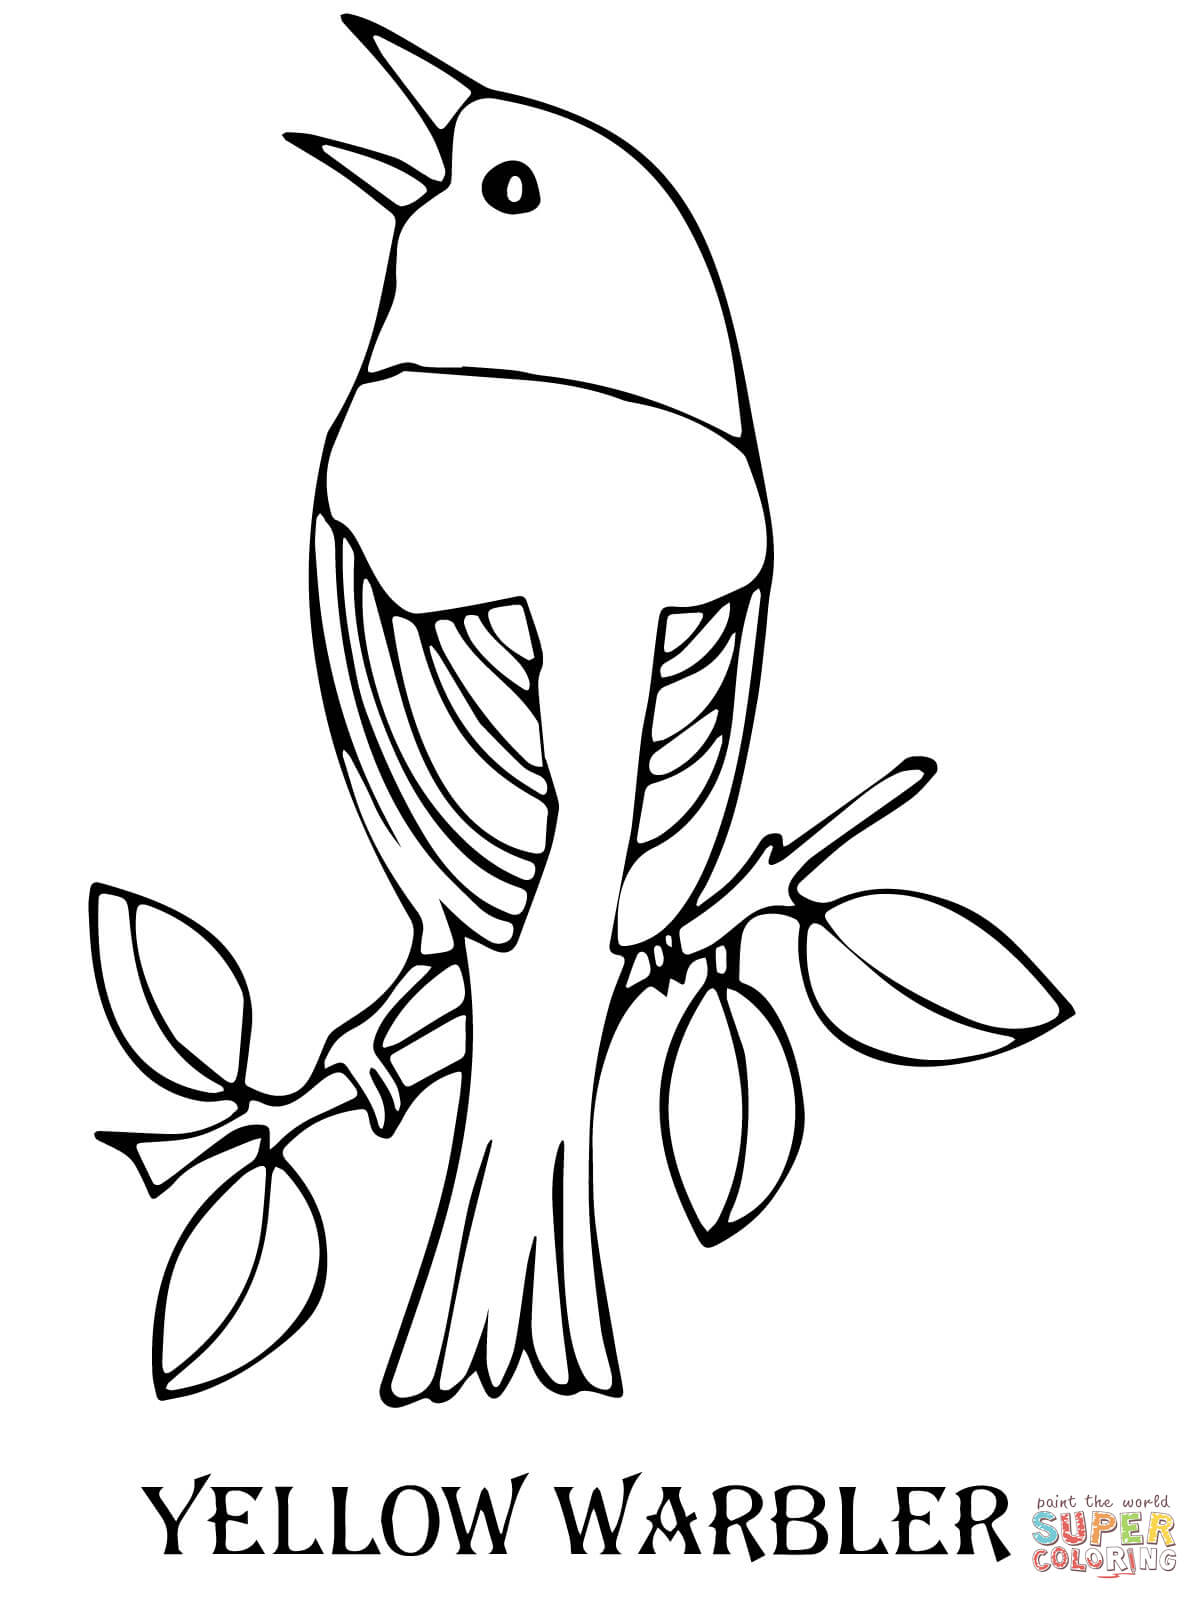 Yellow Warbler Bird Coloring Page Free Printable Coloring Pages